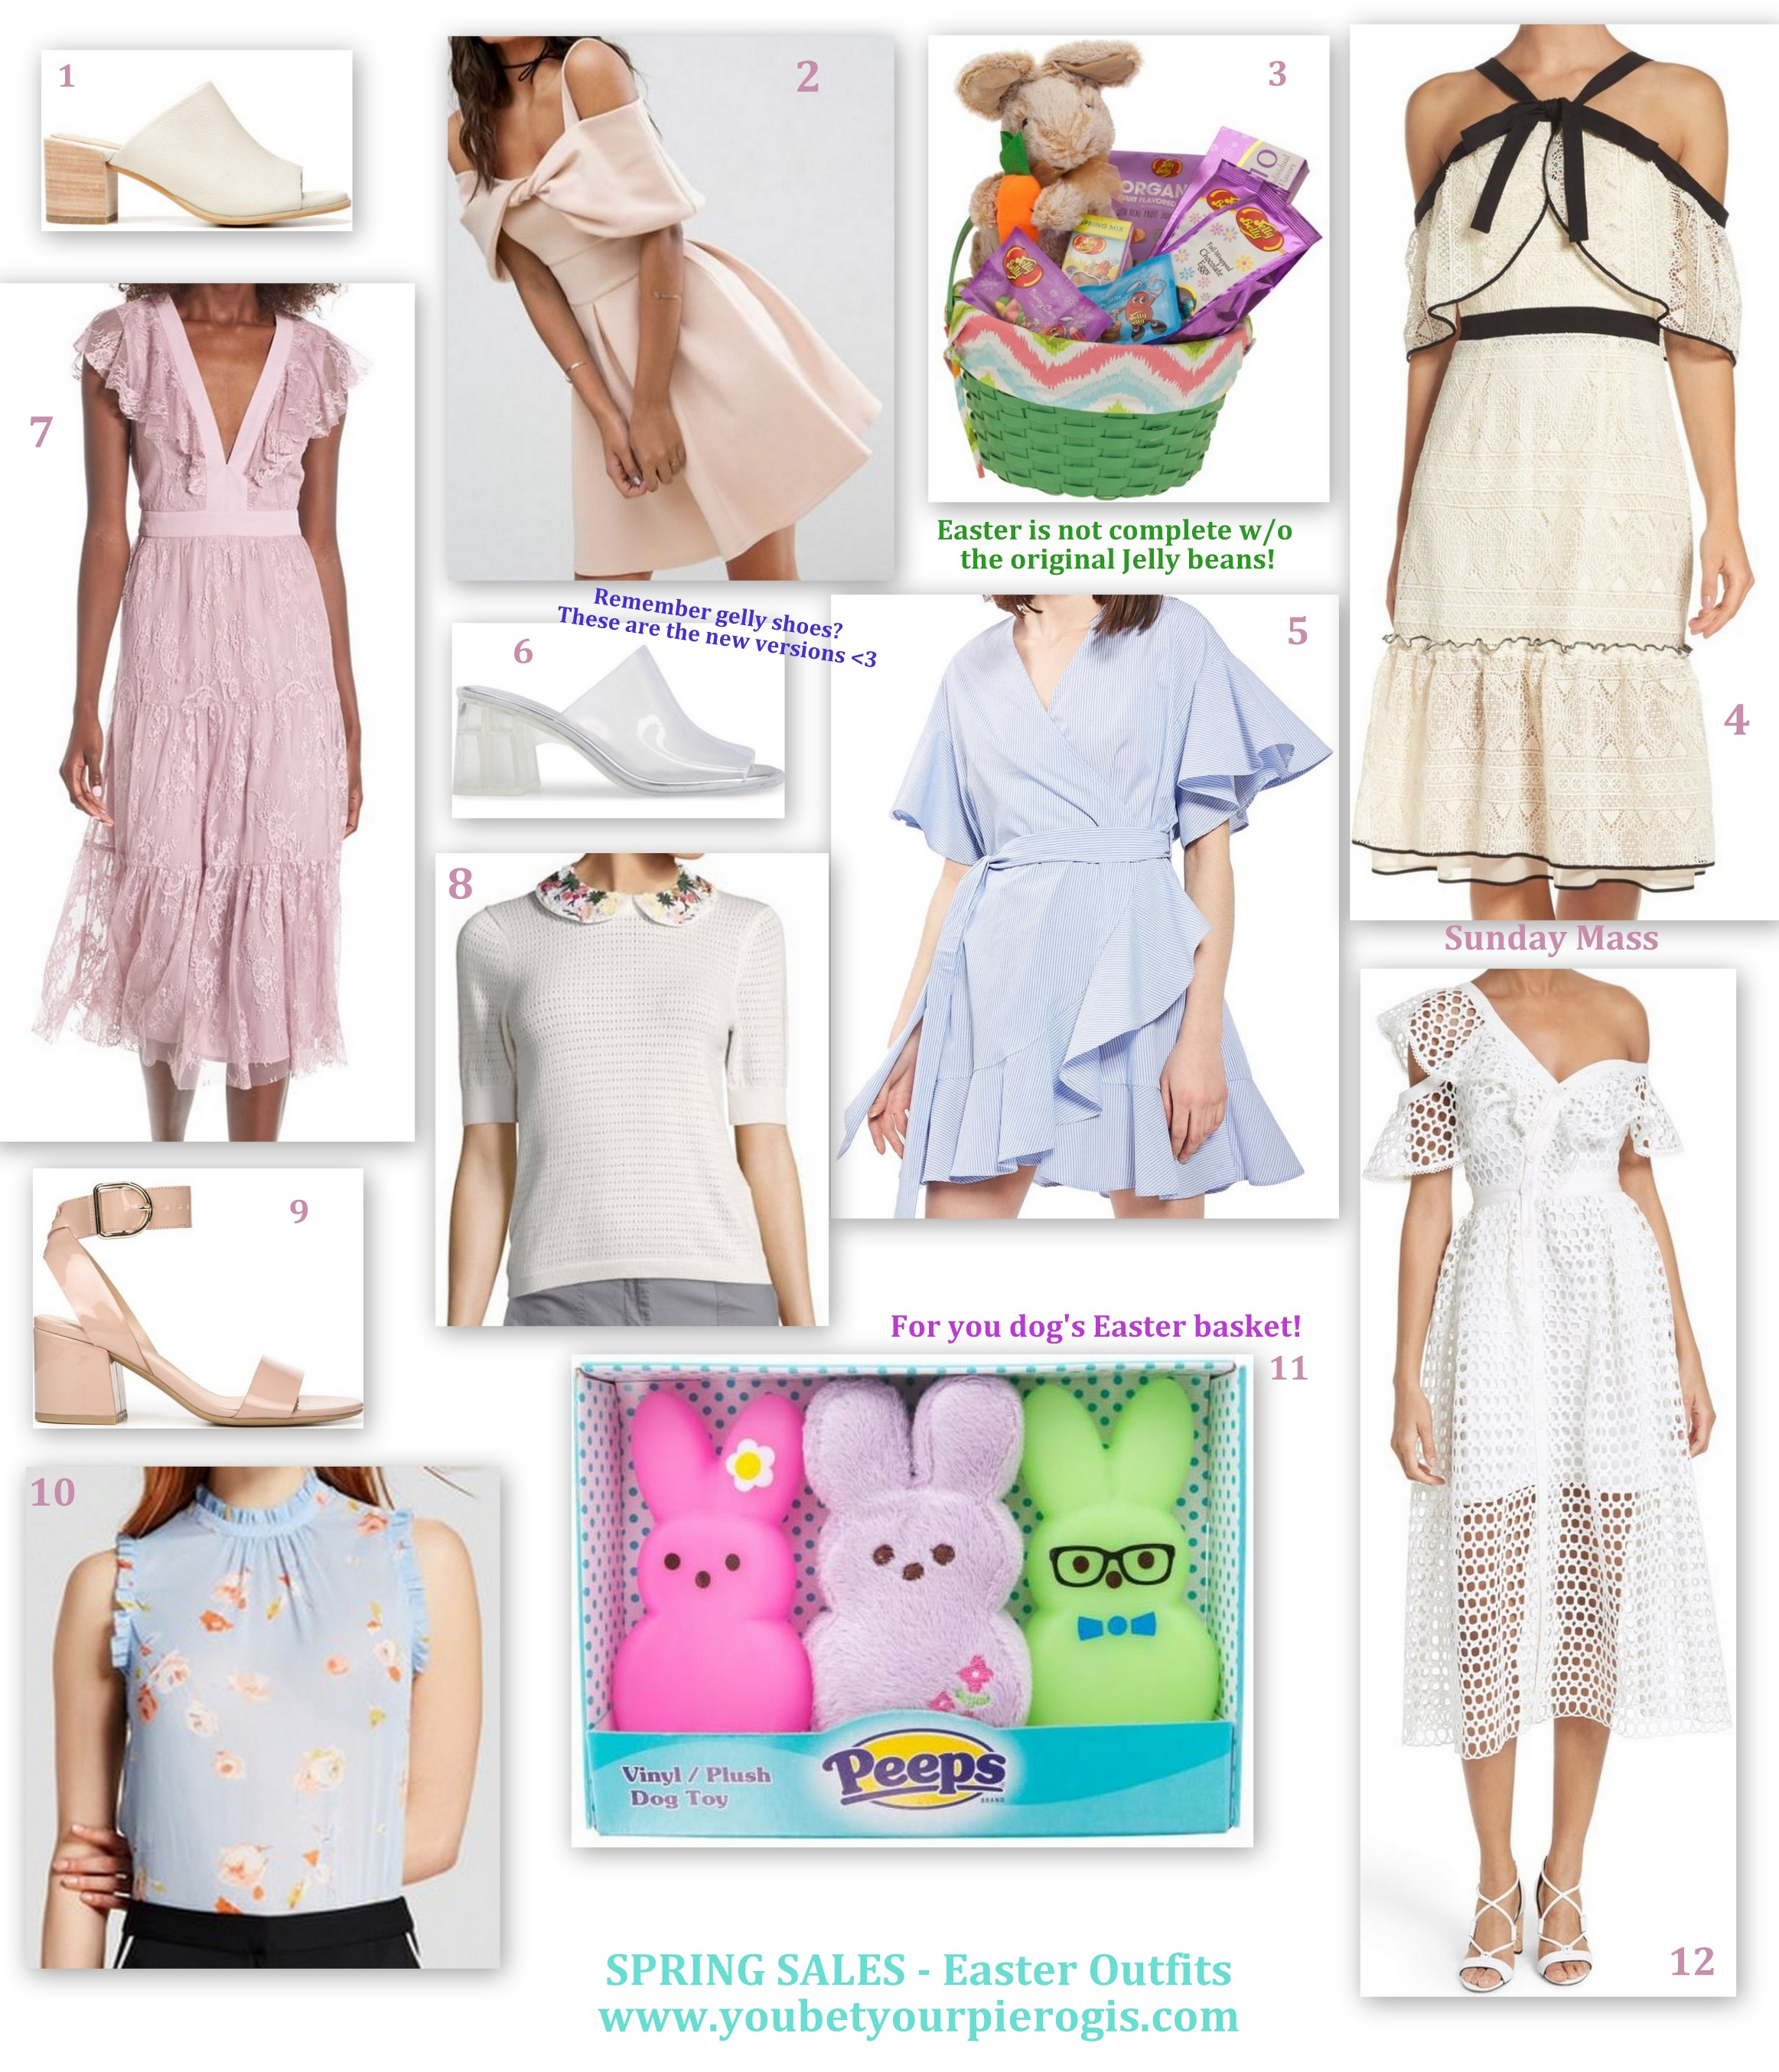 c243823518be07 Easter Outfit Ideas & Spring Sales – You Bet Your Pierogi